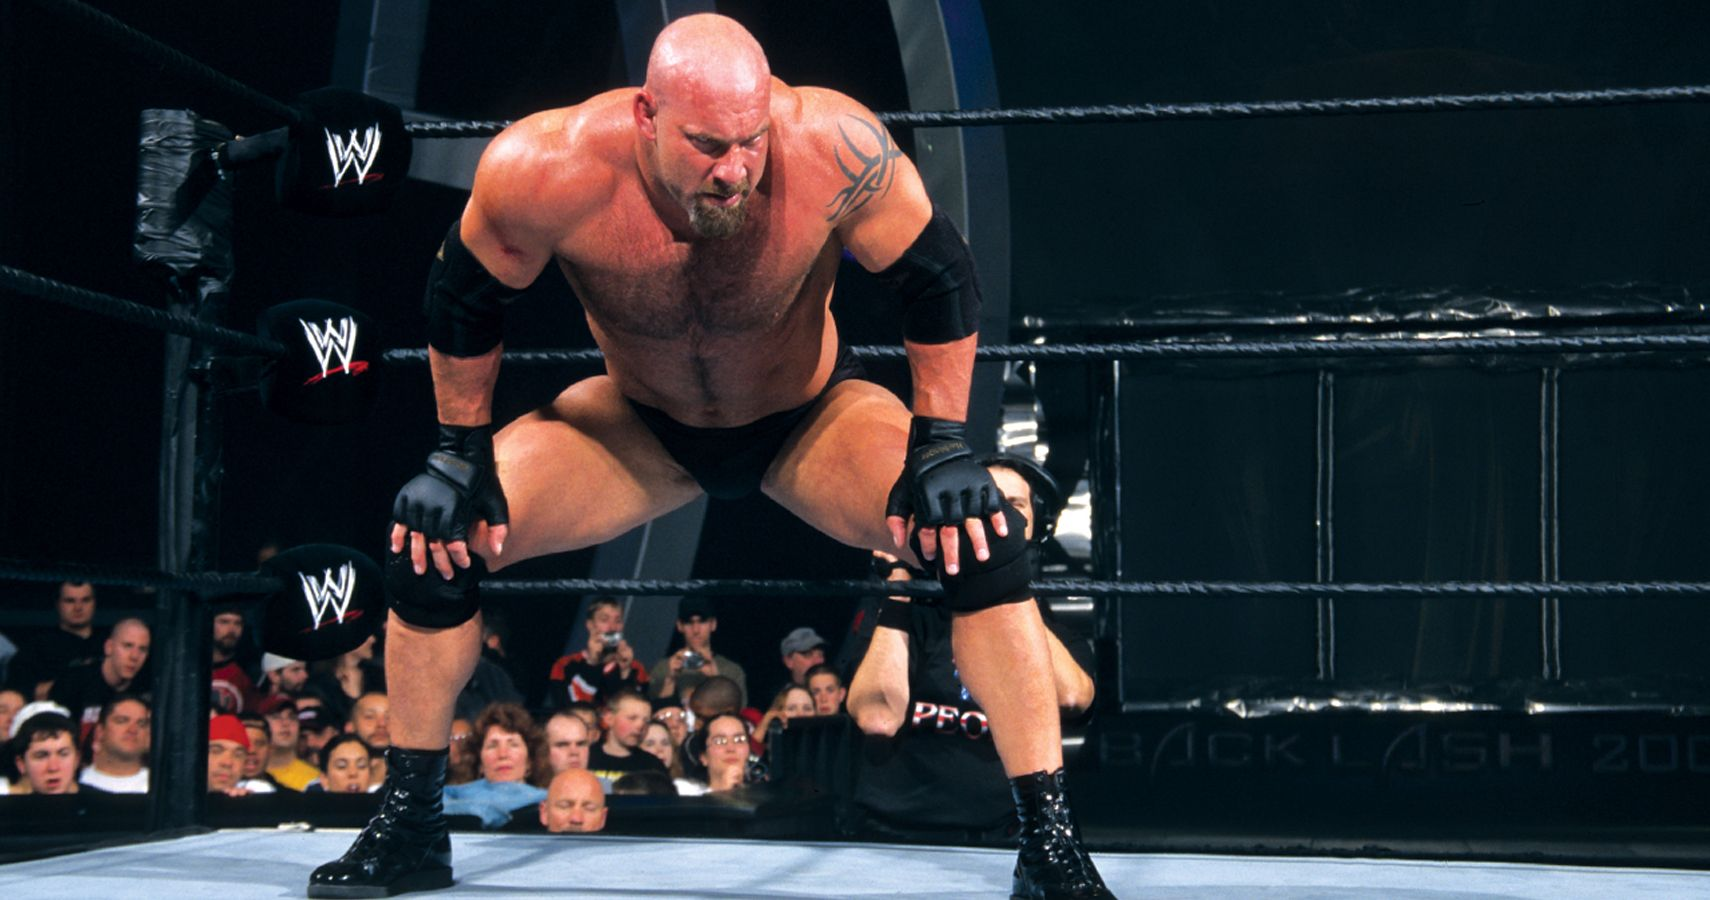 Will Goldberg Have Another Match After Survivor Series?